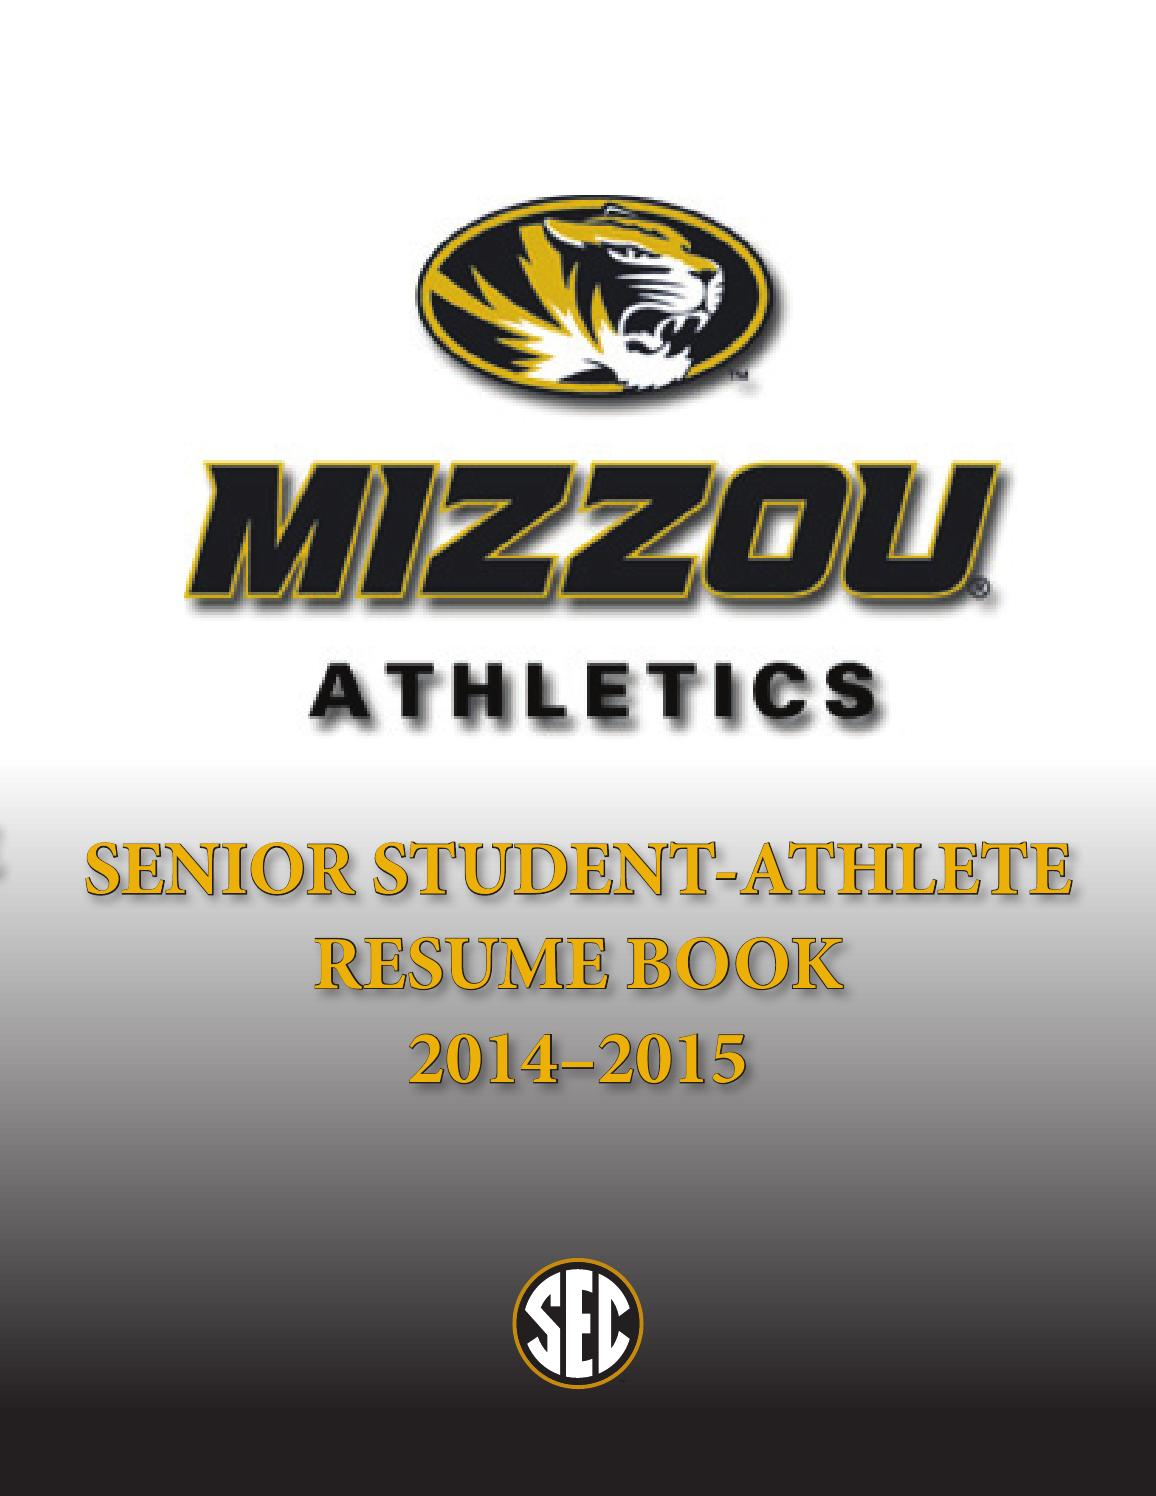 Athletic Resume   Cover Letter 2014 2015 mizzou athletics senior resume book by kim bishop university of  missouri associate athletic director for student athlete development issuu